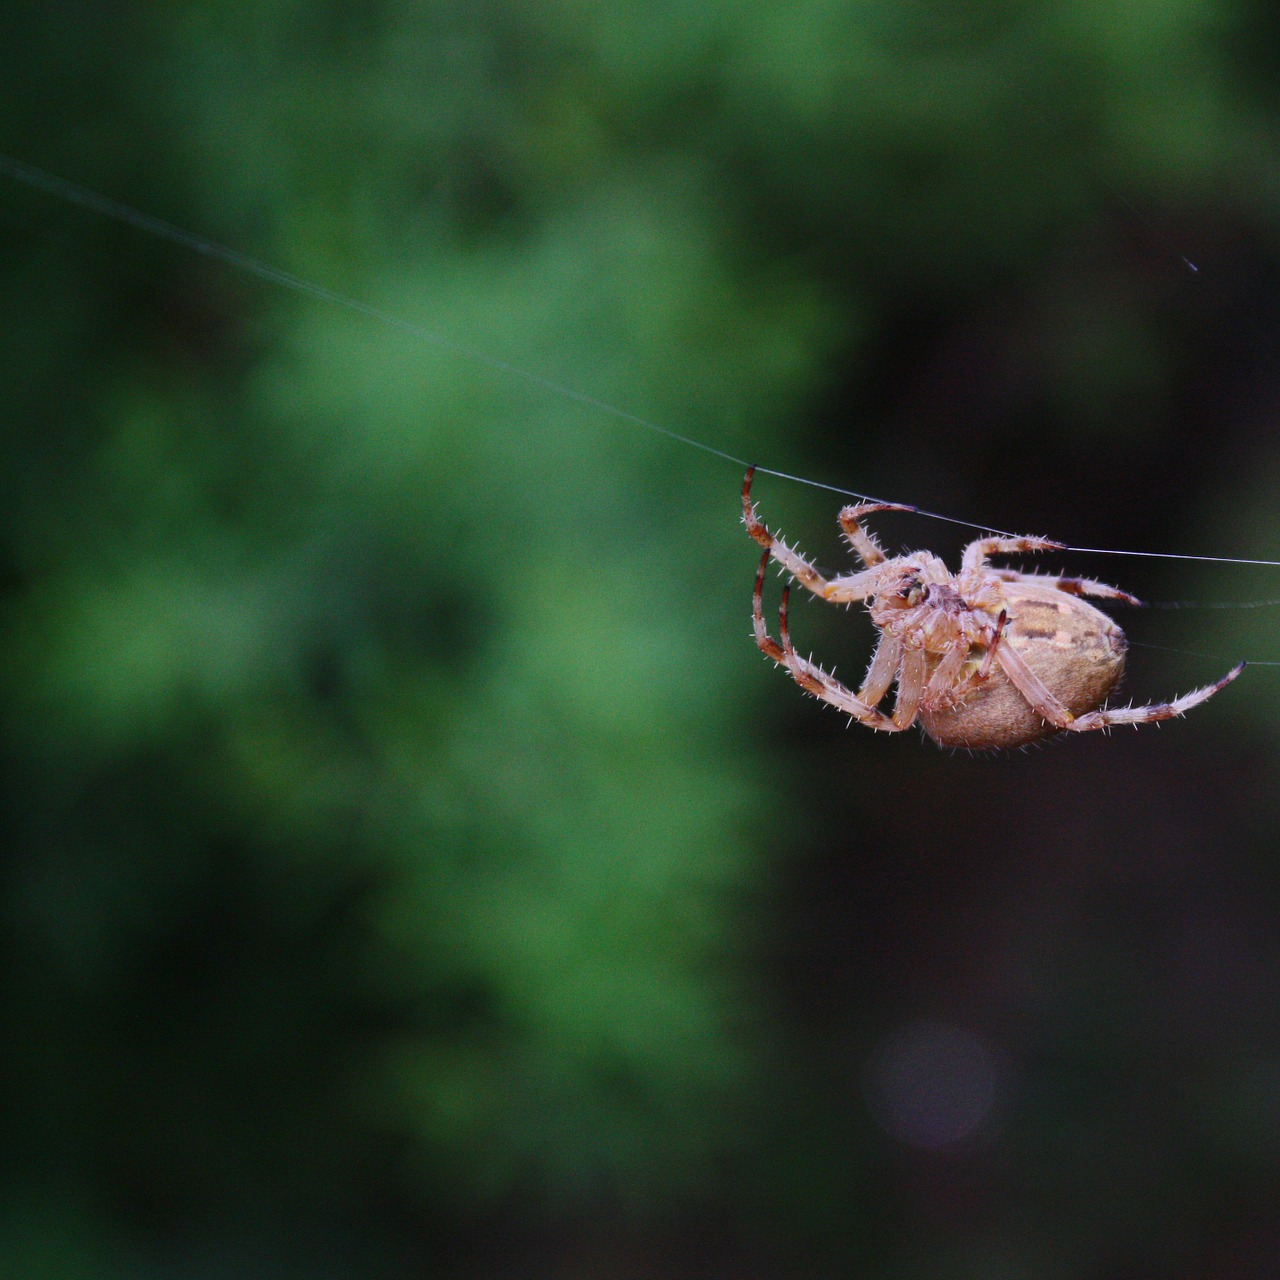 spider insect jumping spider free photo